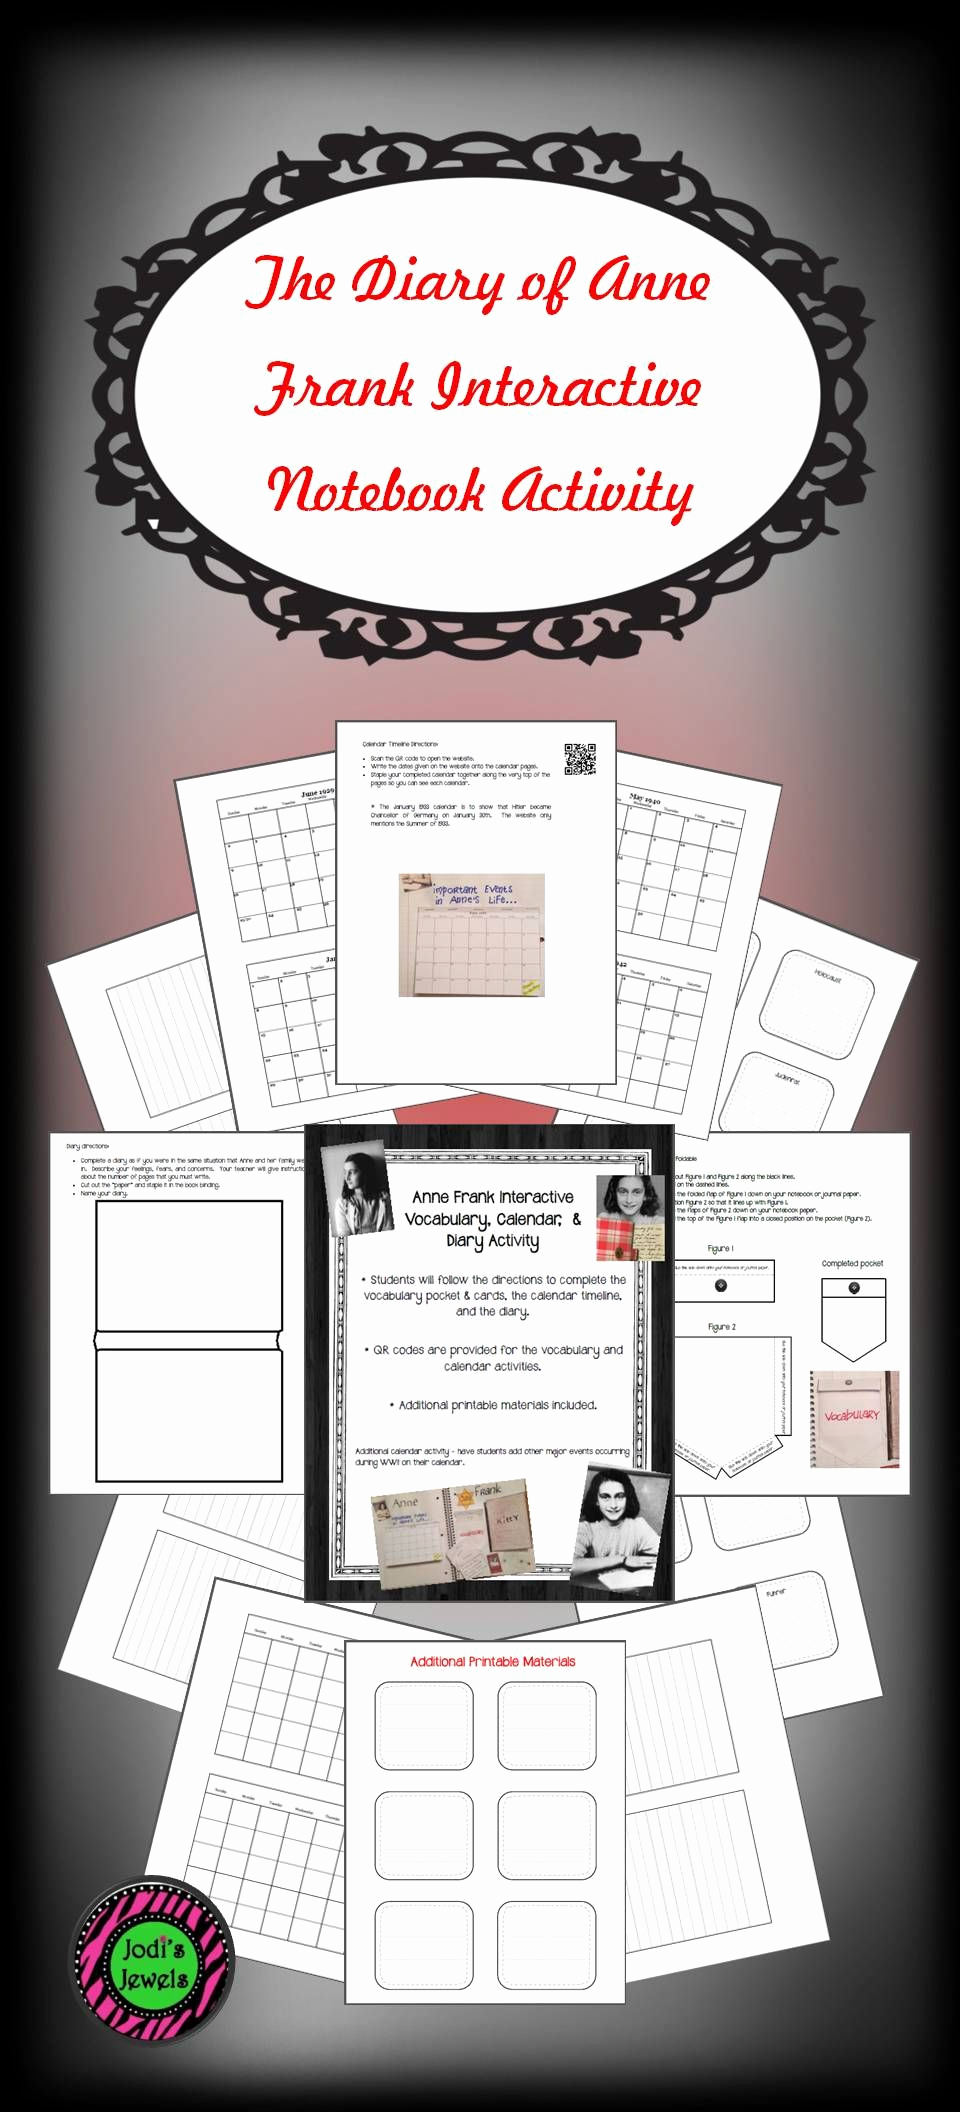 Anne Frank Worksheets Middle School Elegant Anne Frank Interactive Vocabulary Calendar and Diary